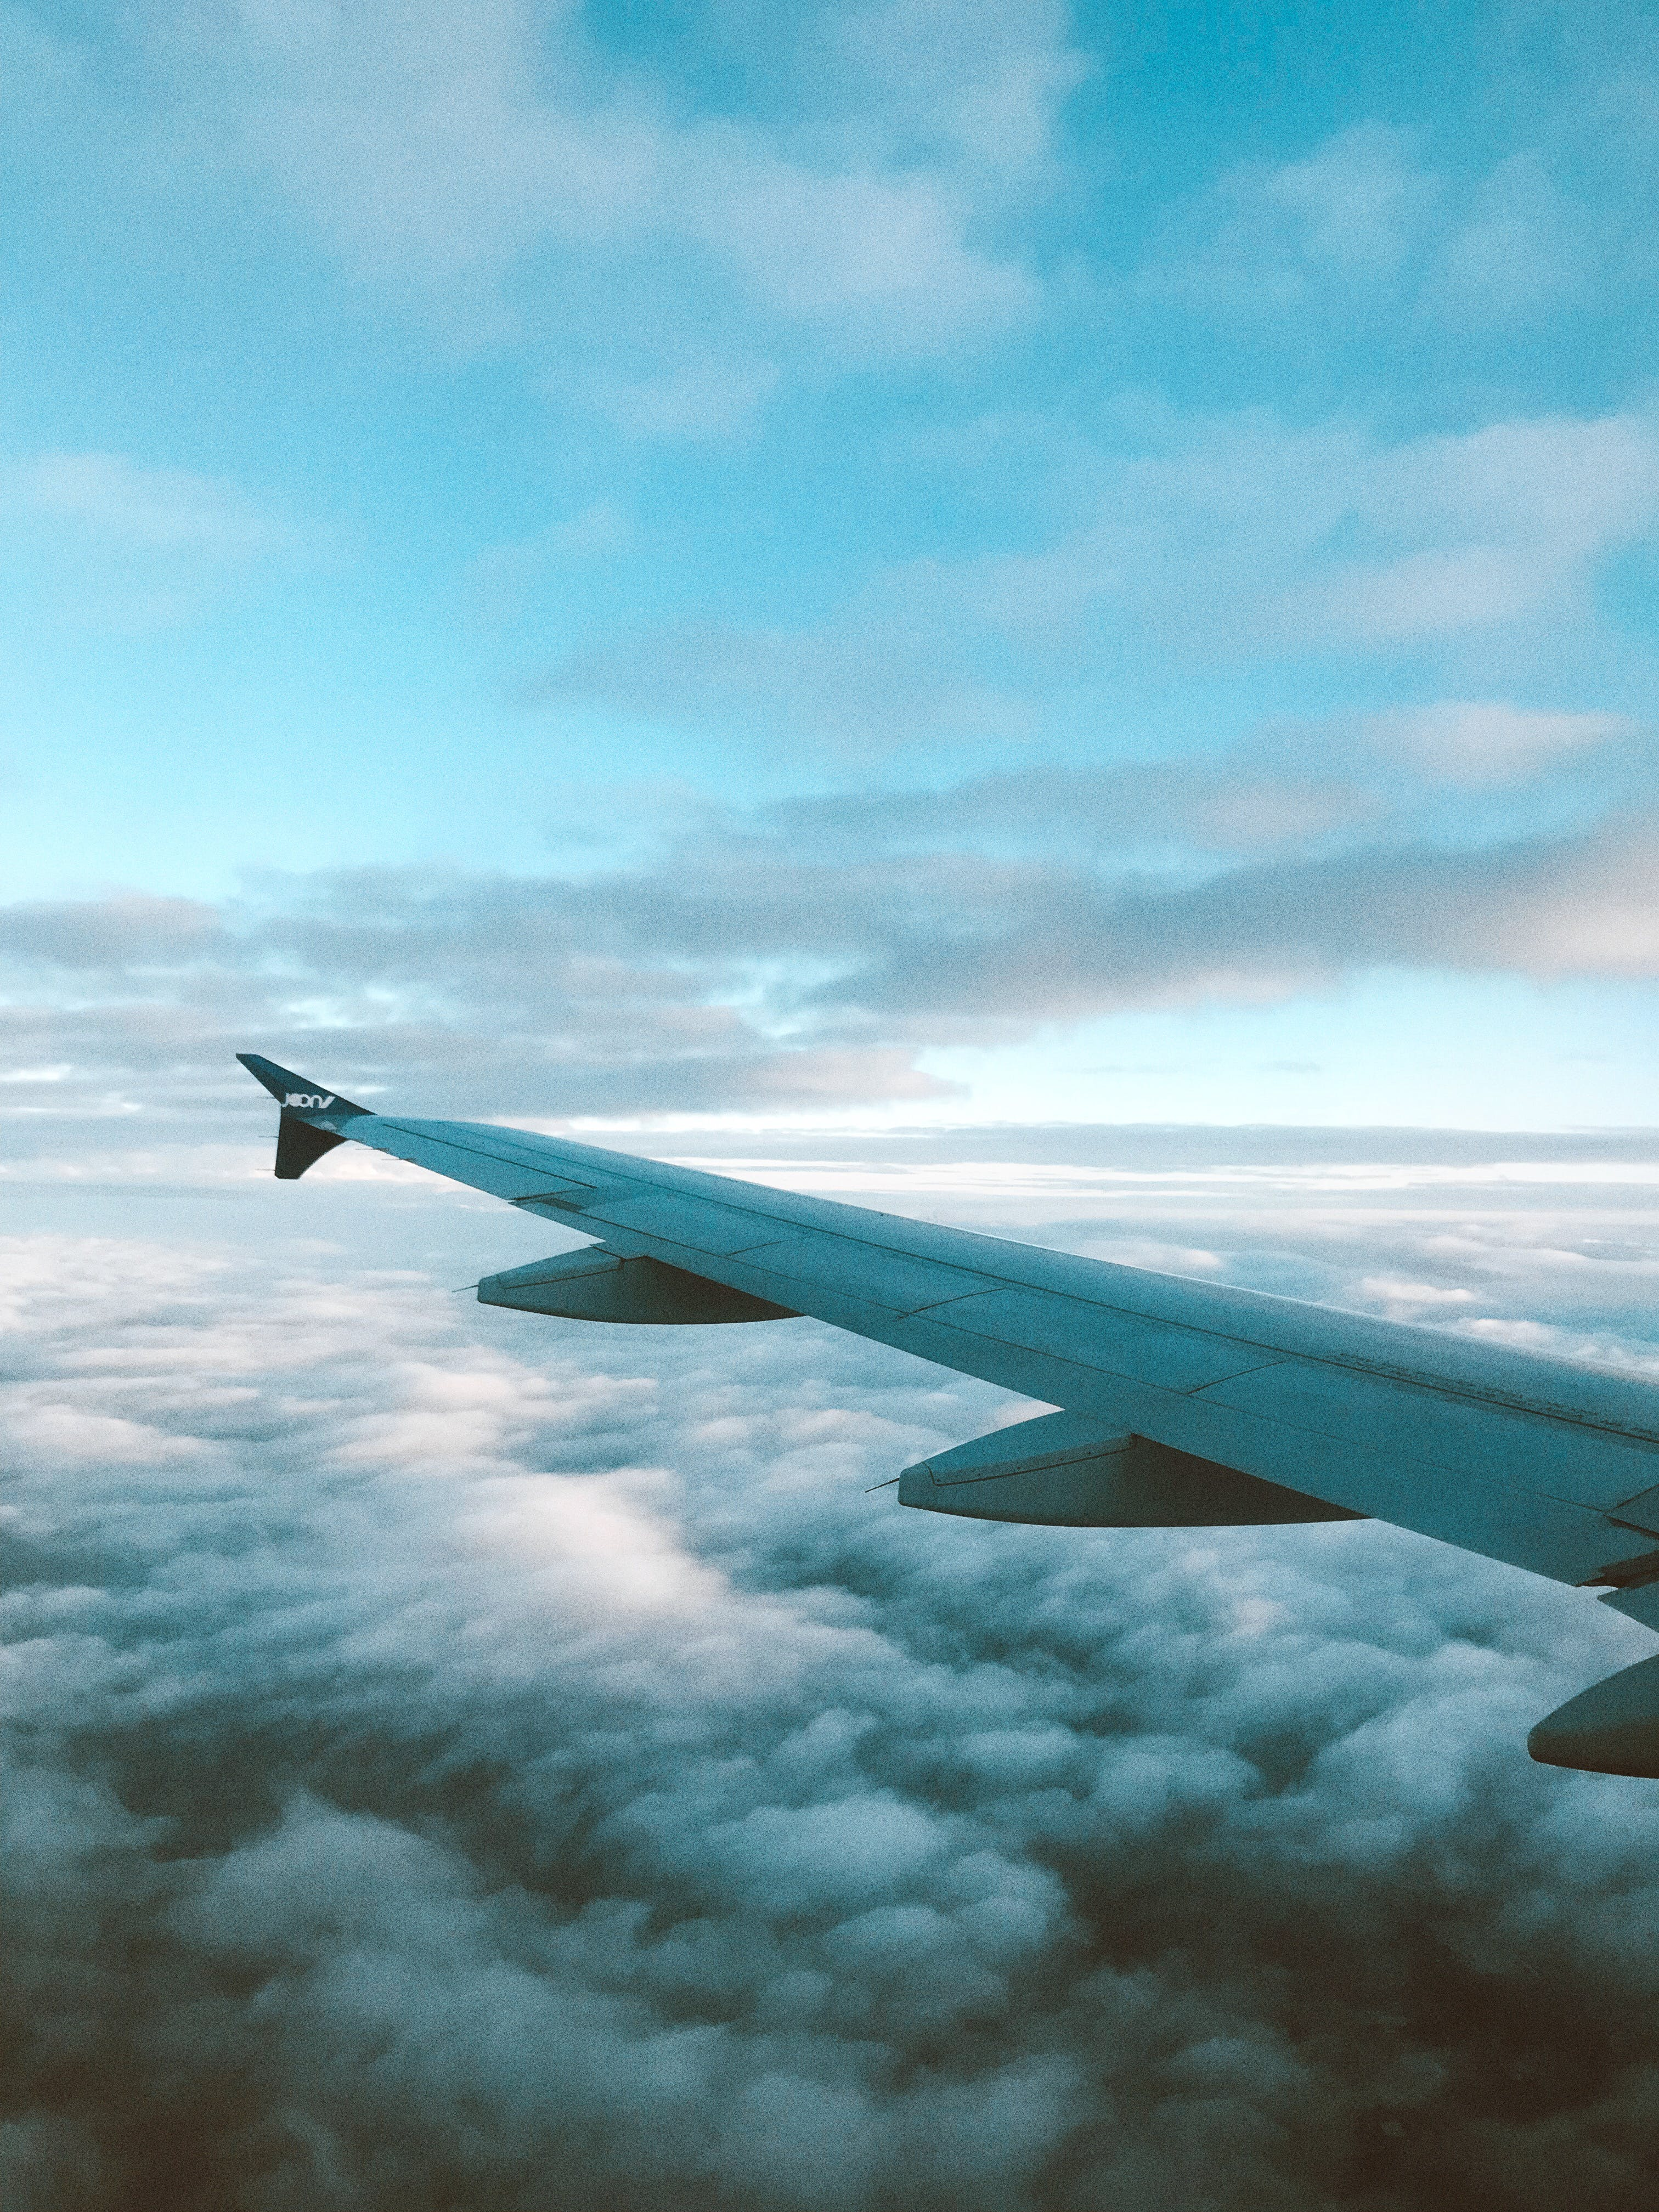 Photo of Wing of an Airplane